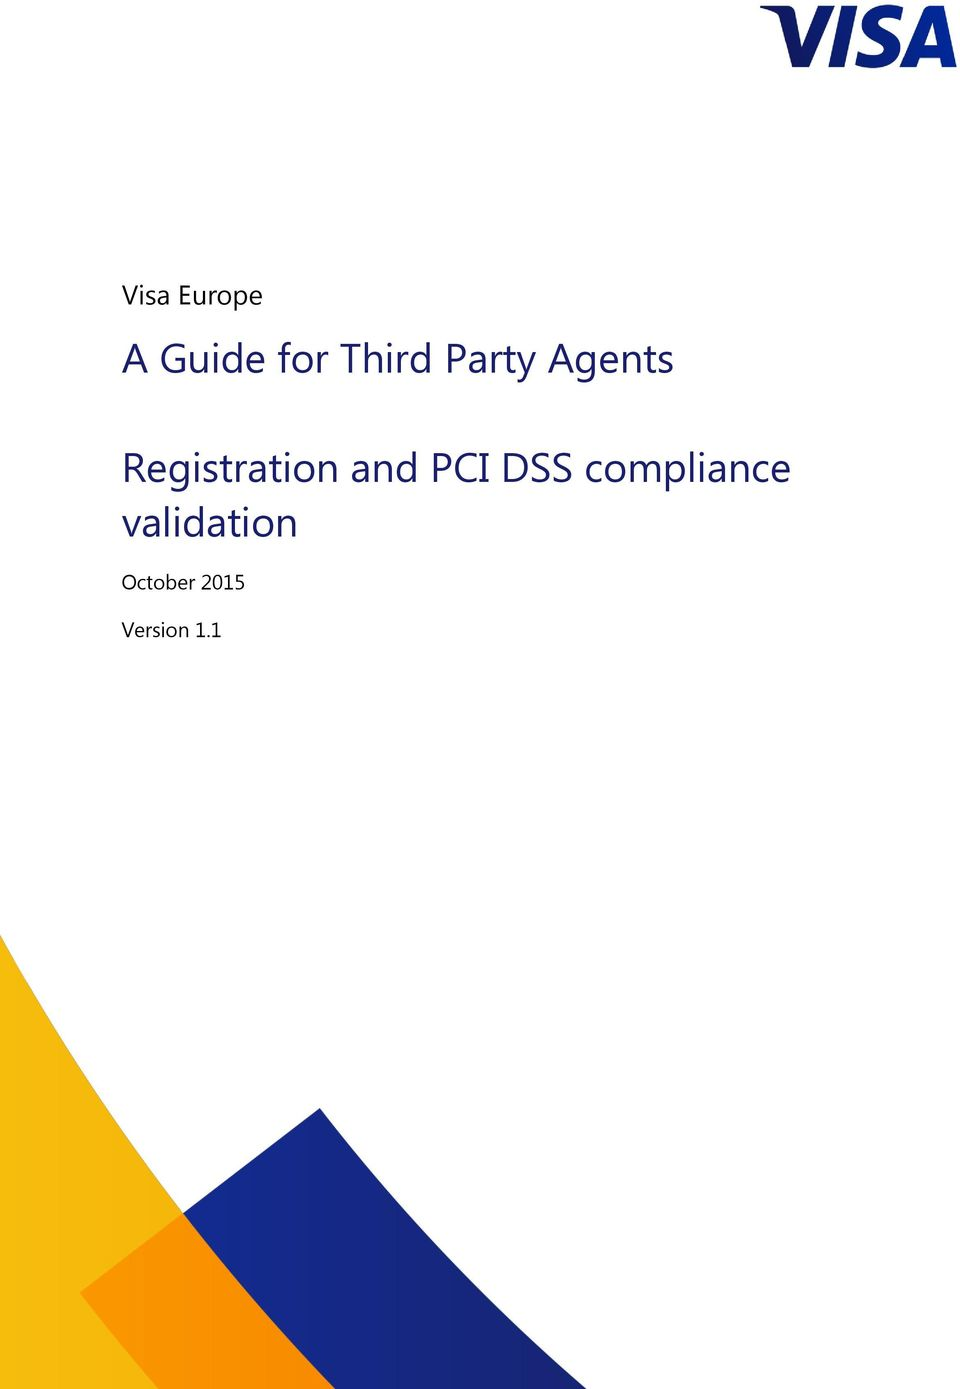 Registration and PCI DSS